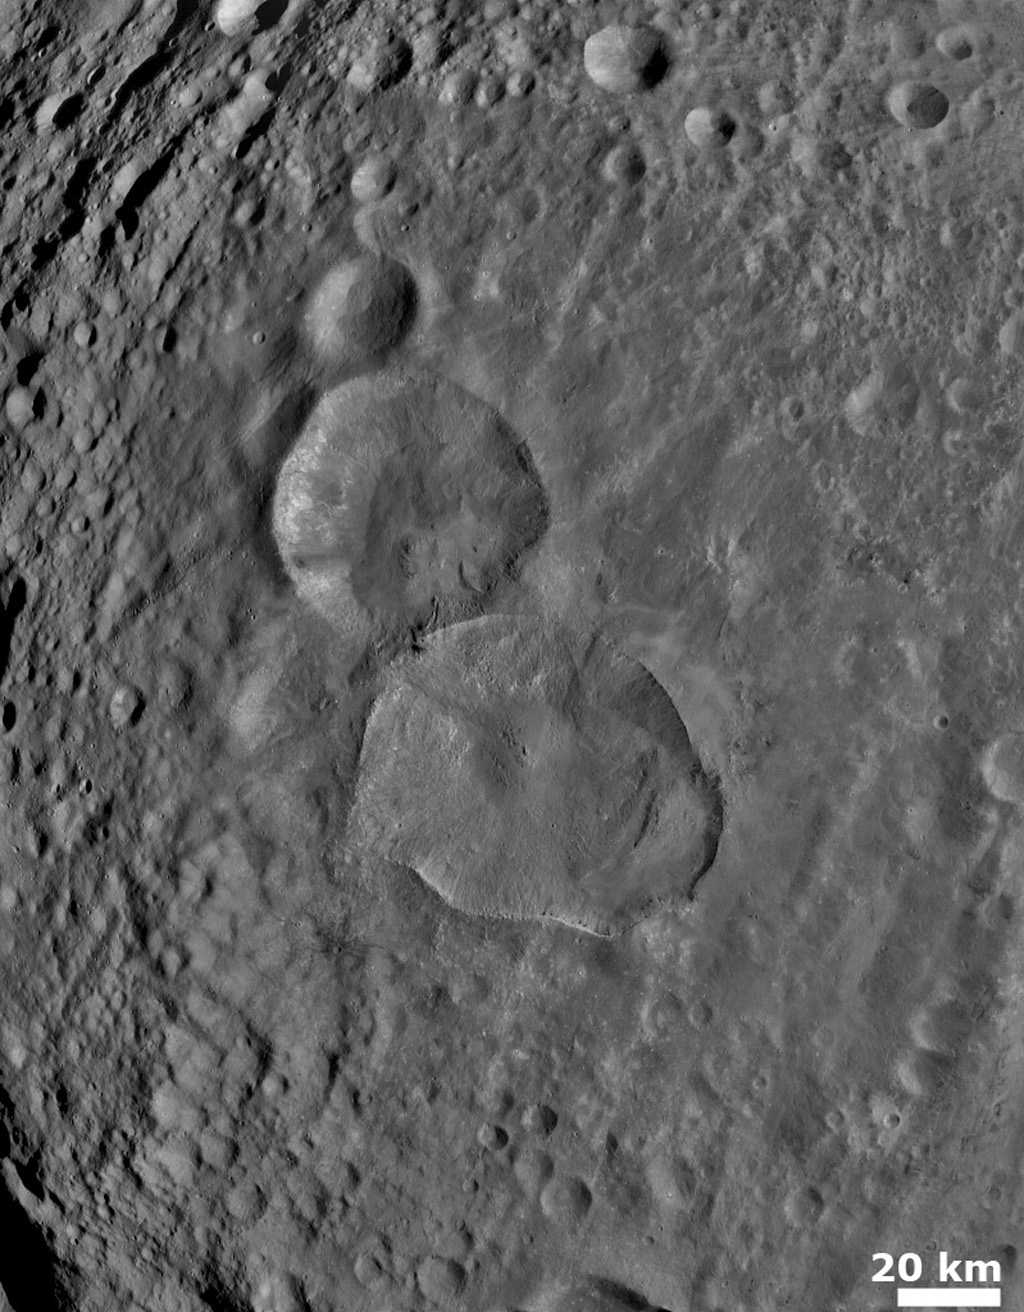 NASA's Dawn spacecraft obtained this image of two large, young craters on Vesta with its framing camera on August 6, 2011. This image was taken through the framing camera's clear filter aboard the spacecraft.